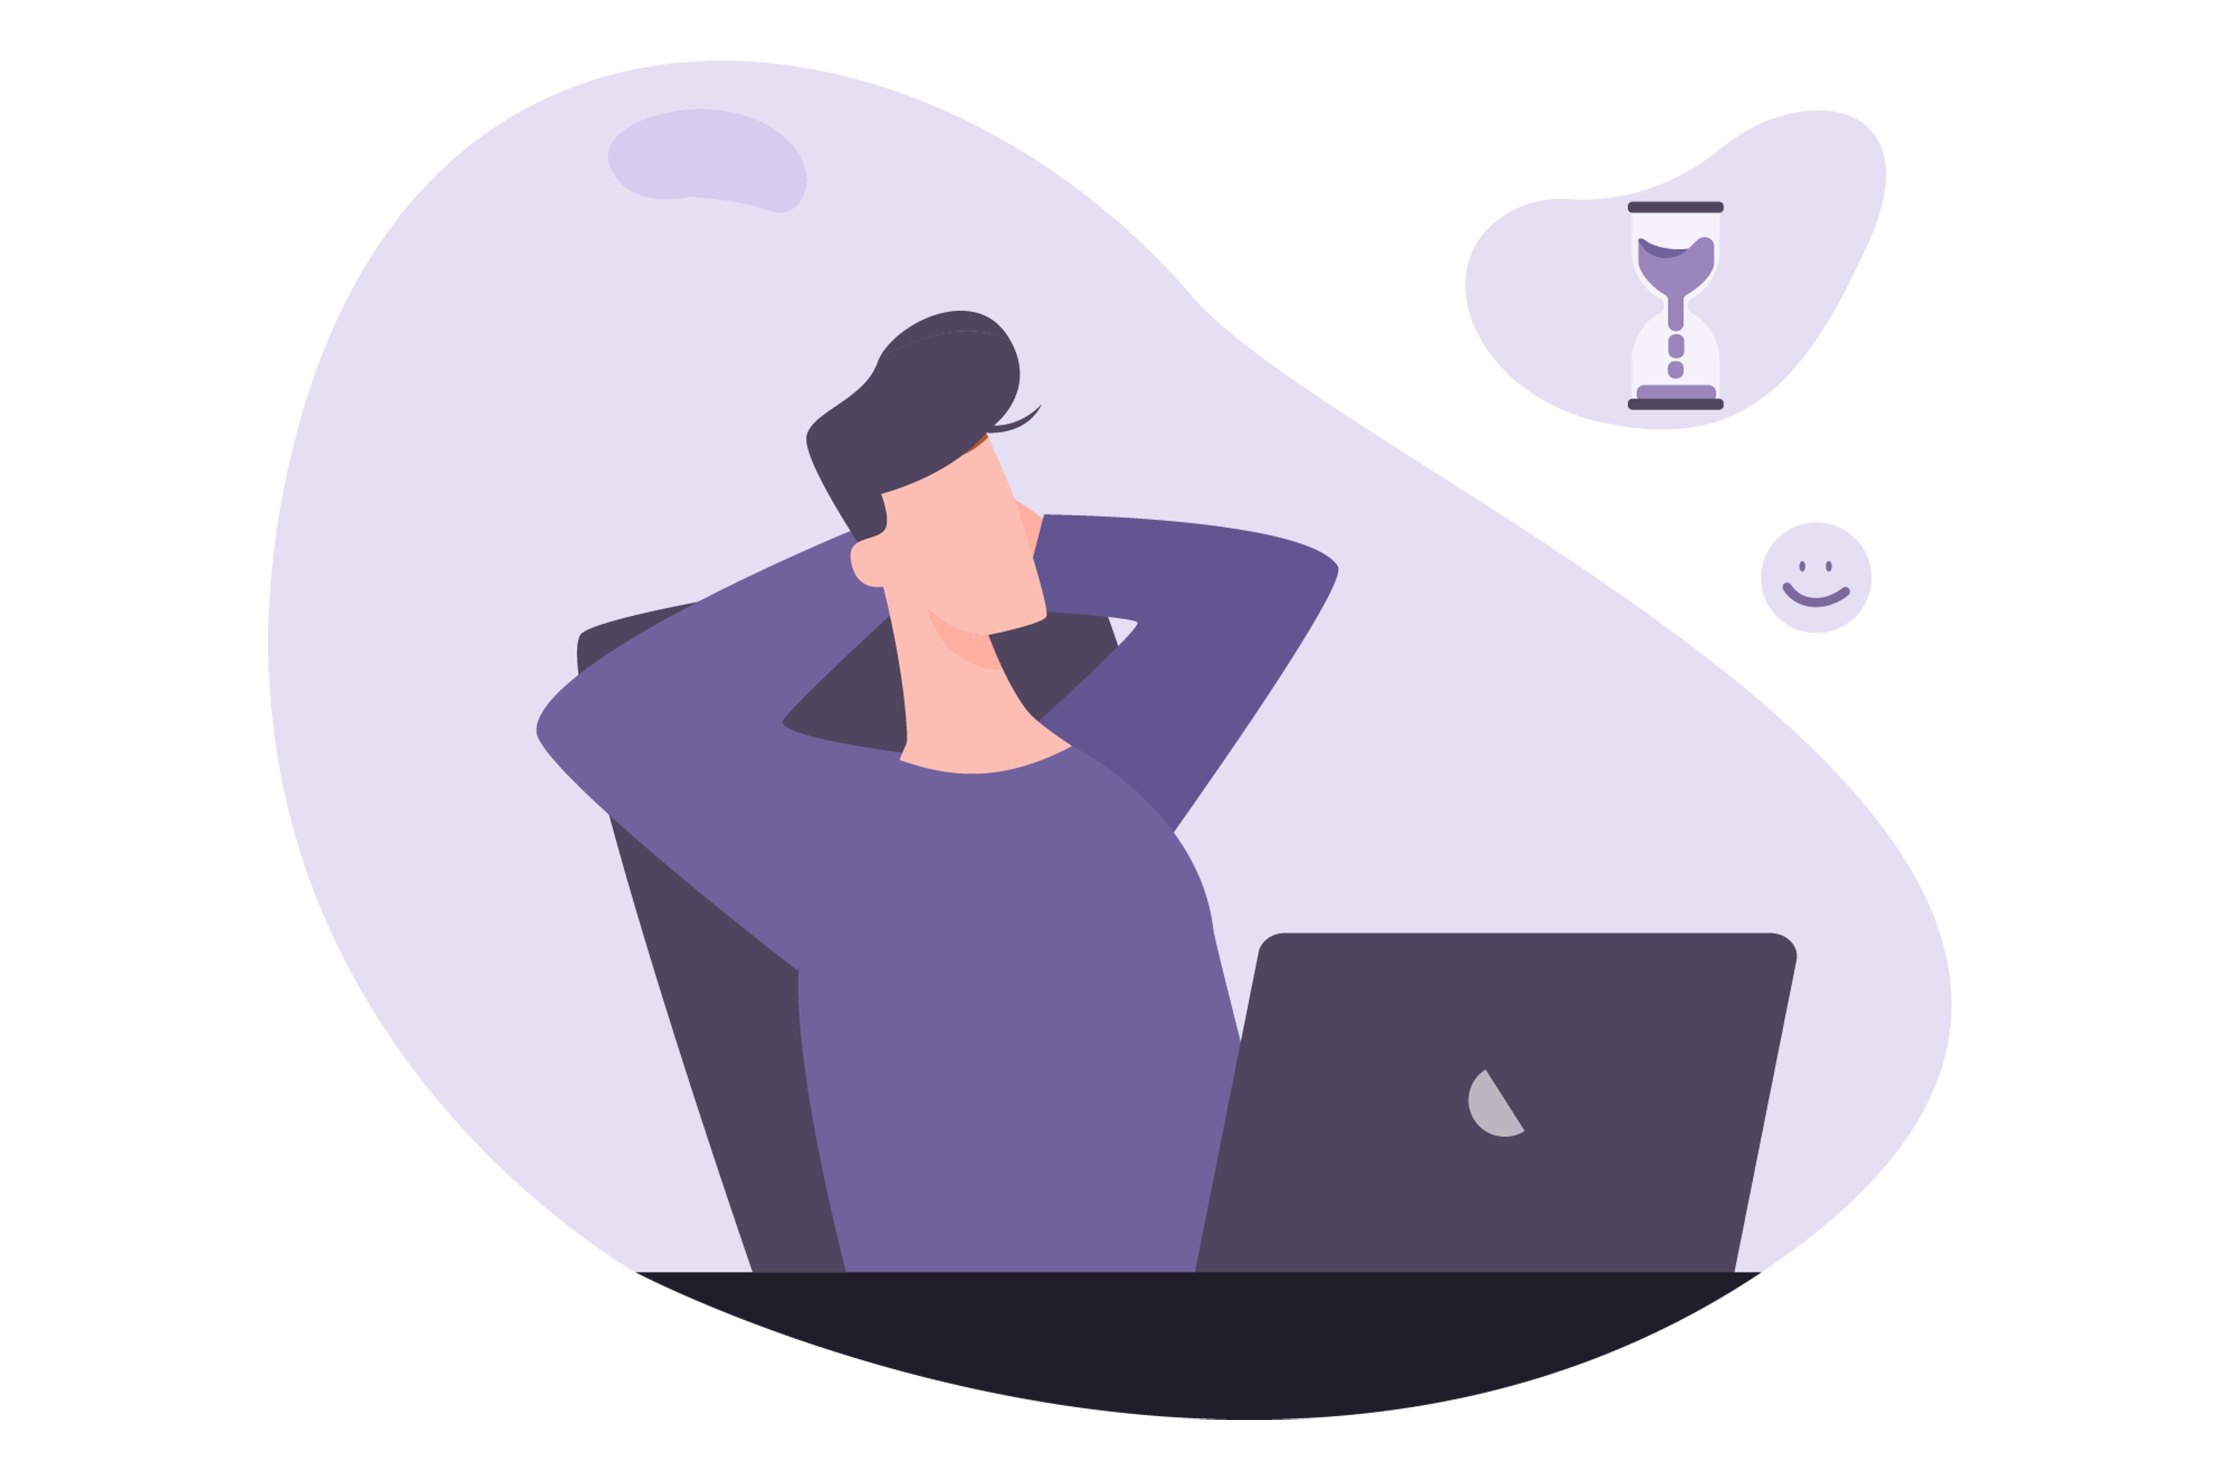 Purple blobbed illustration of man relaxing at work as he saves time through digitising payments